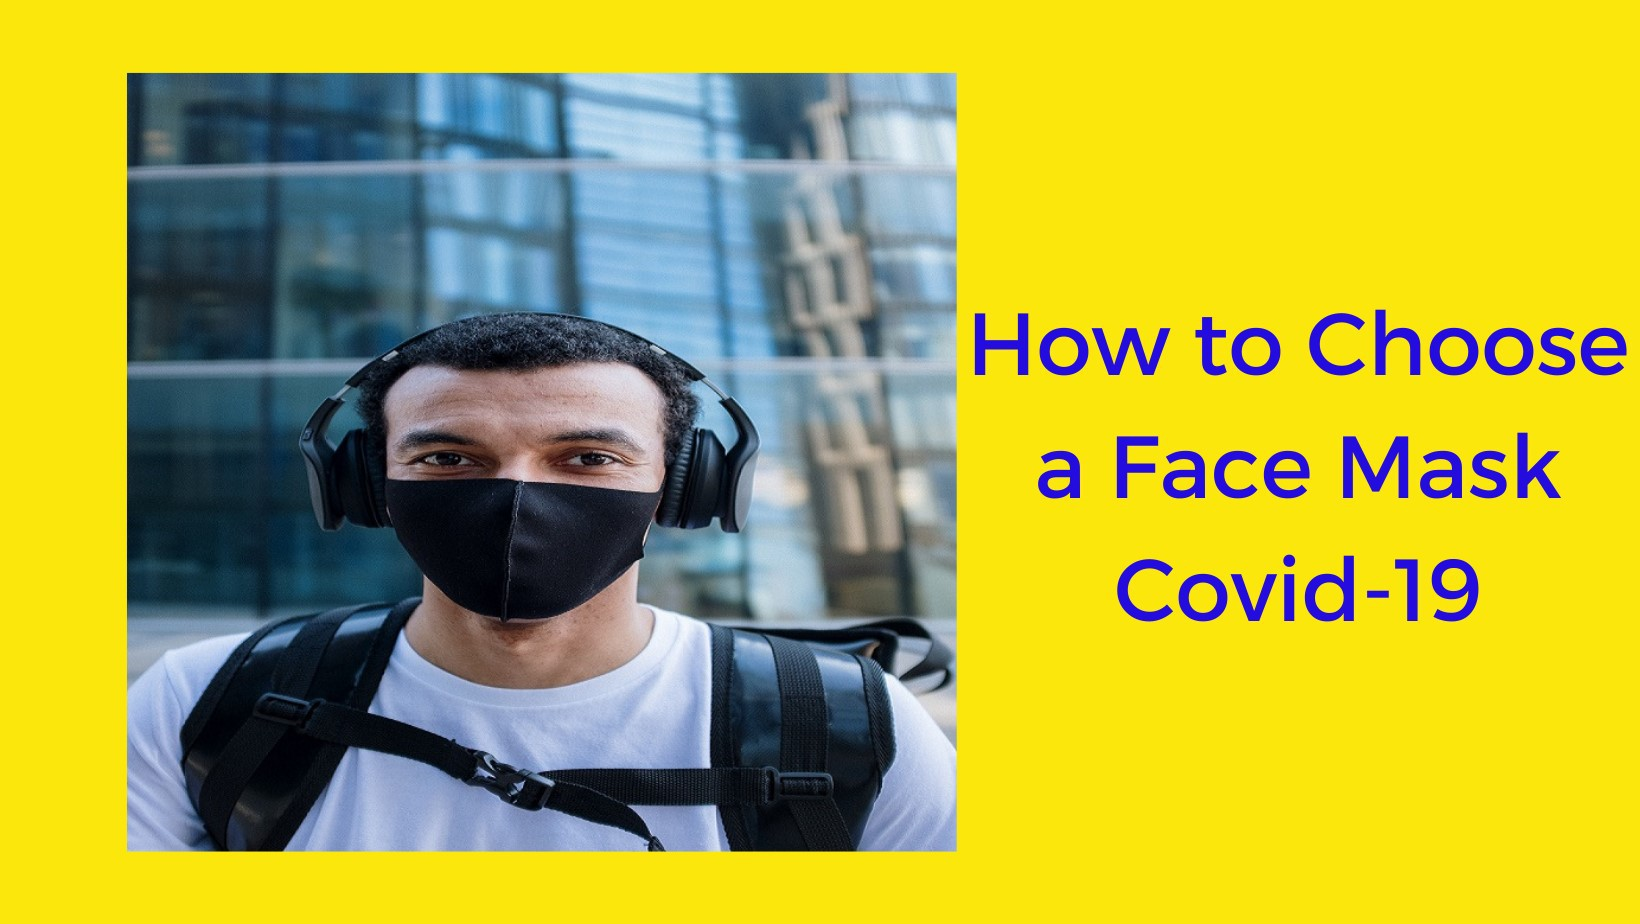 Here's Everything you need to know about a face mask for Covid-19